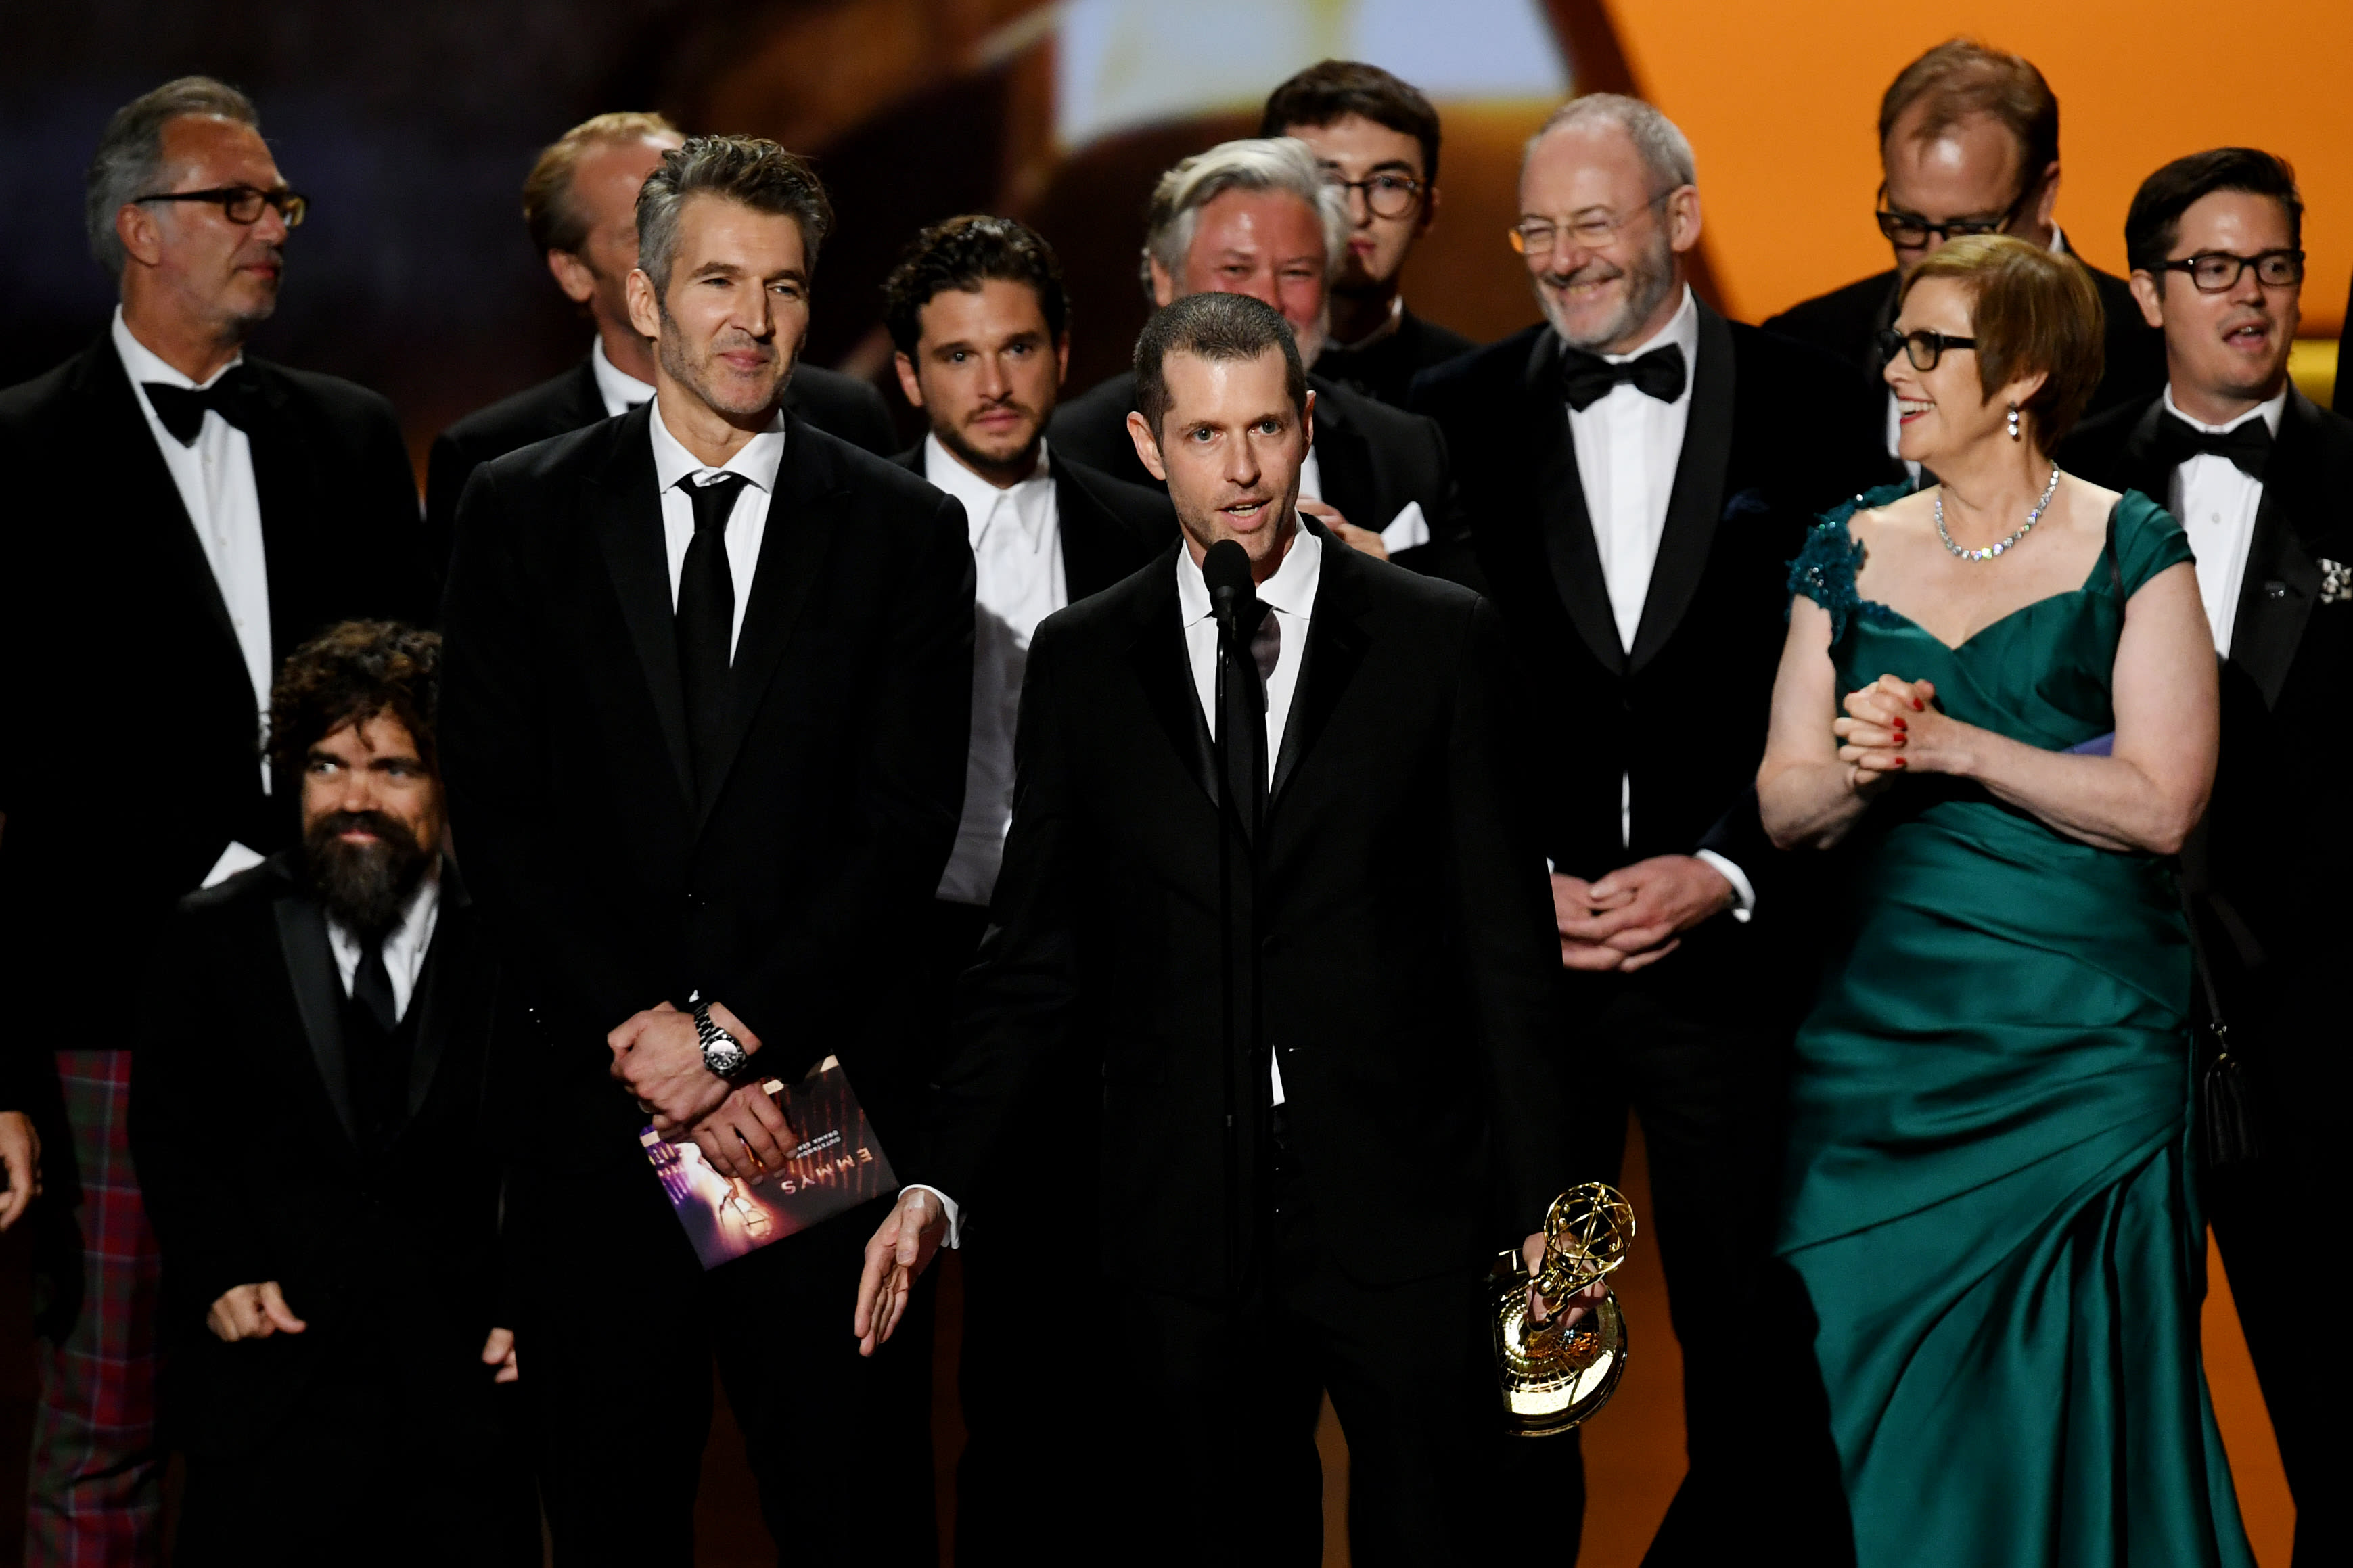 'Game of Thrones' ends run with best drama award, 59 total Emmy Awards